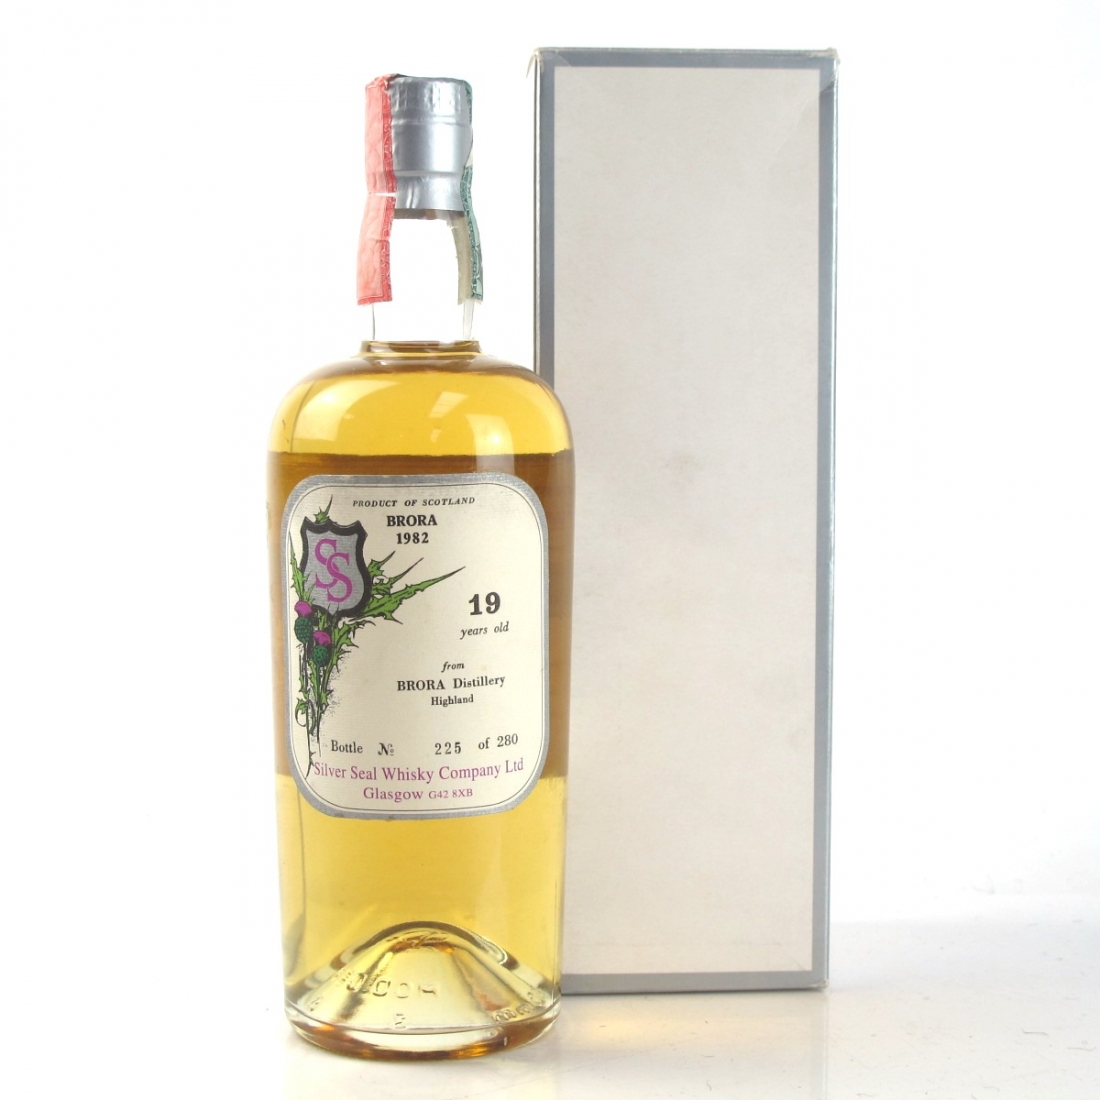 Brora 1982 Silver Seal 19 Year Old / First Bottling